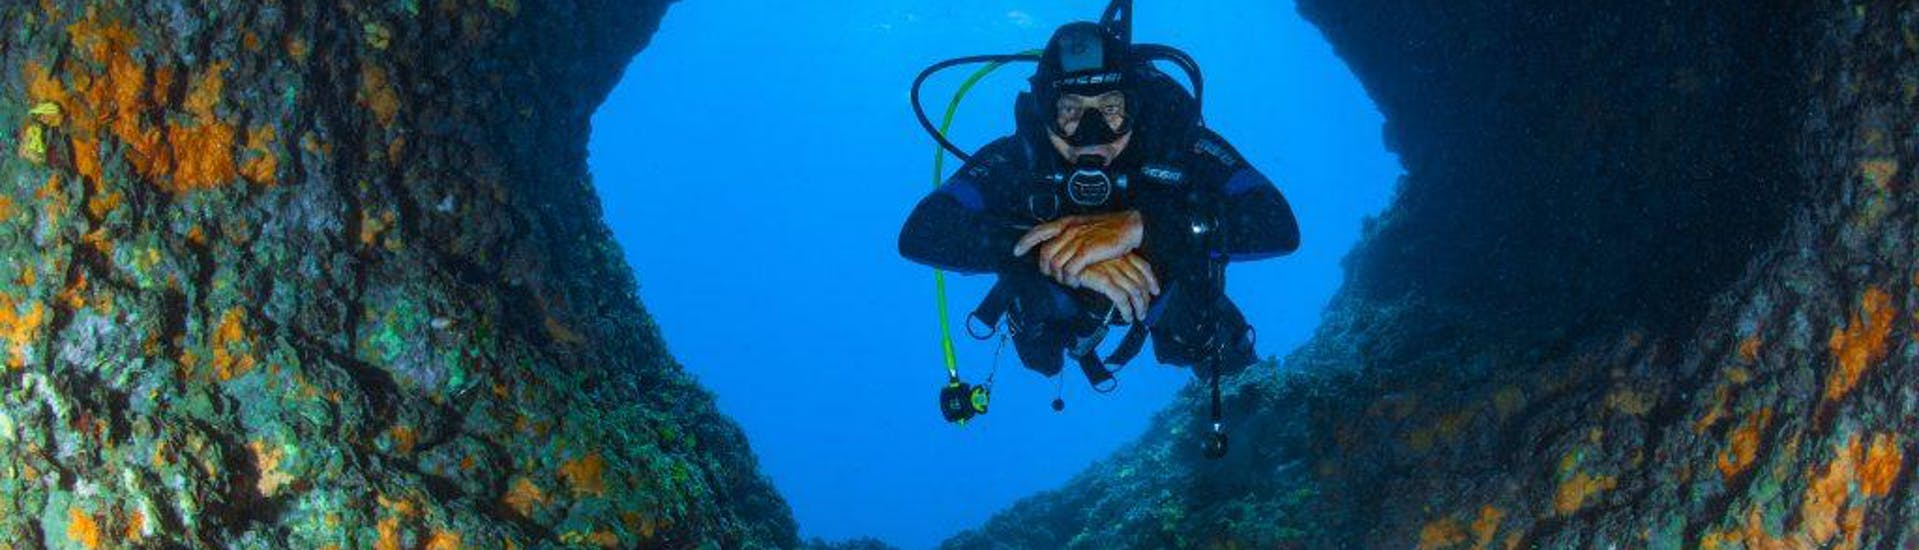 PADI/SSI Open Water Diver Course in Hvar for Beginners